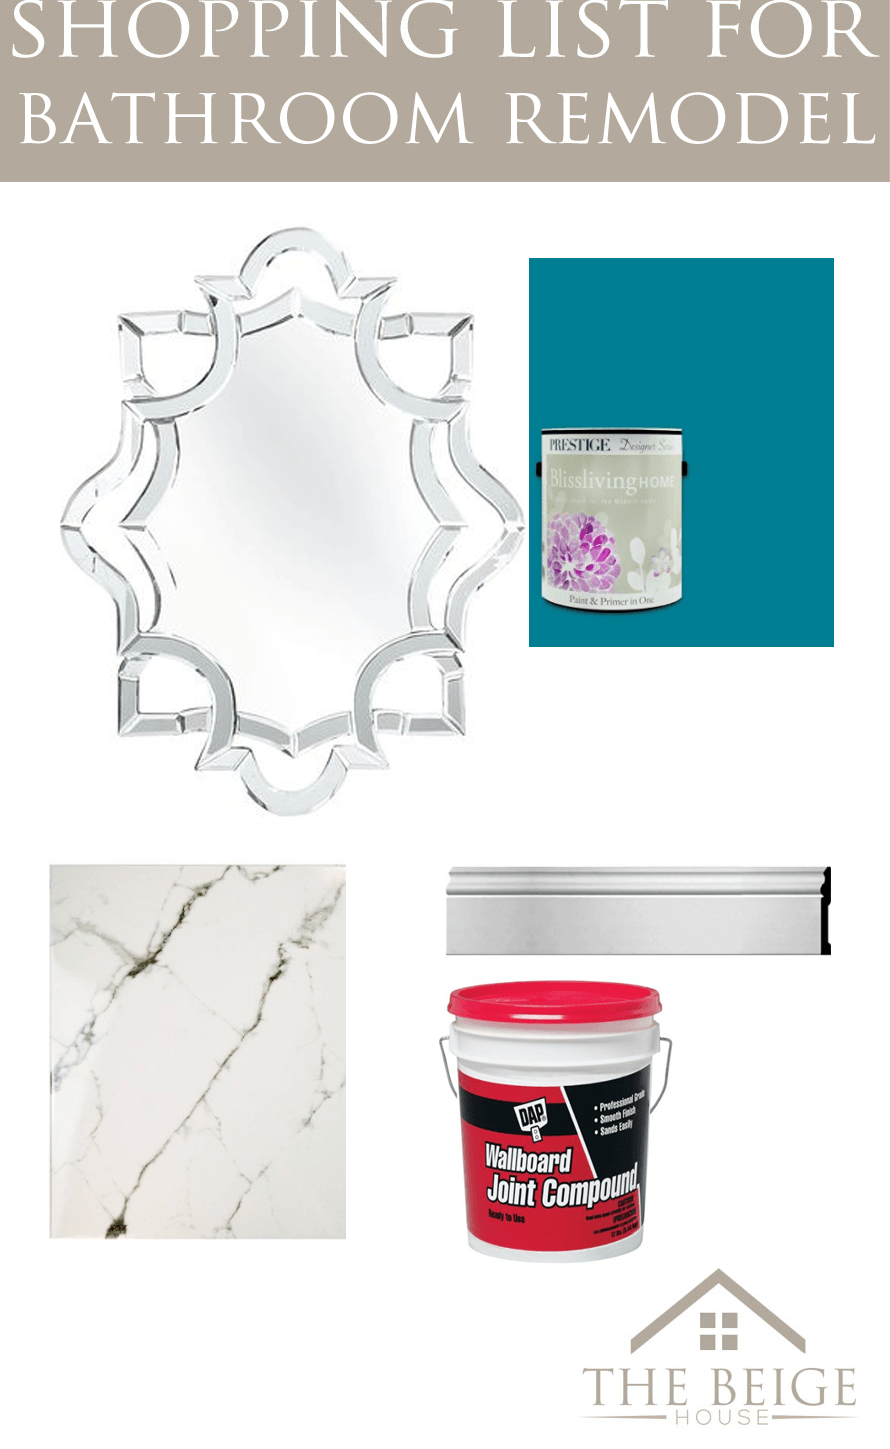 Shopping list for my upstairs bathroom remodel